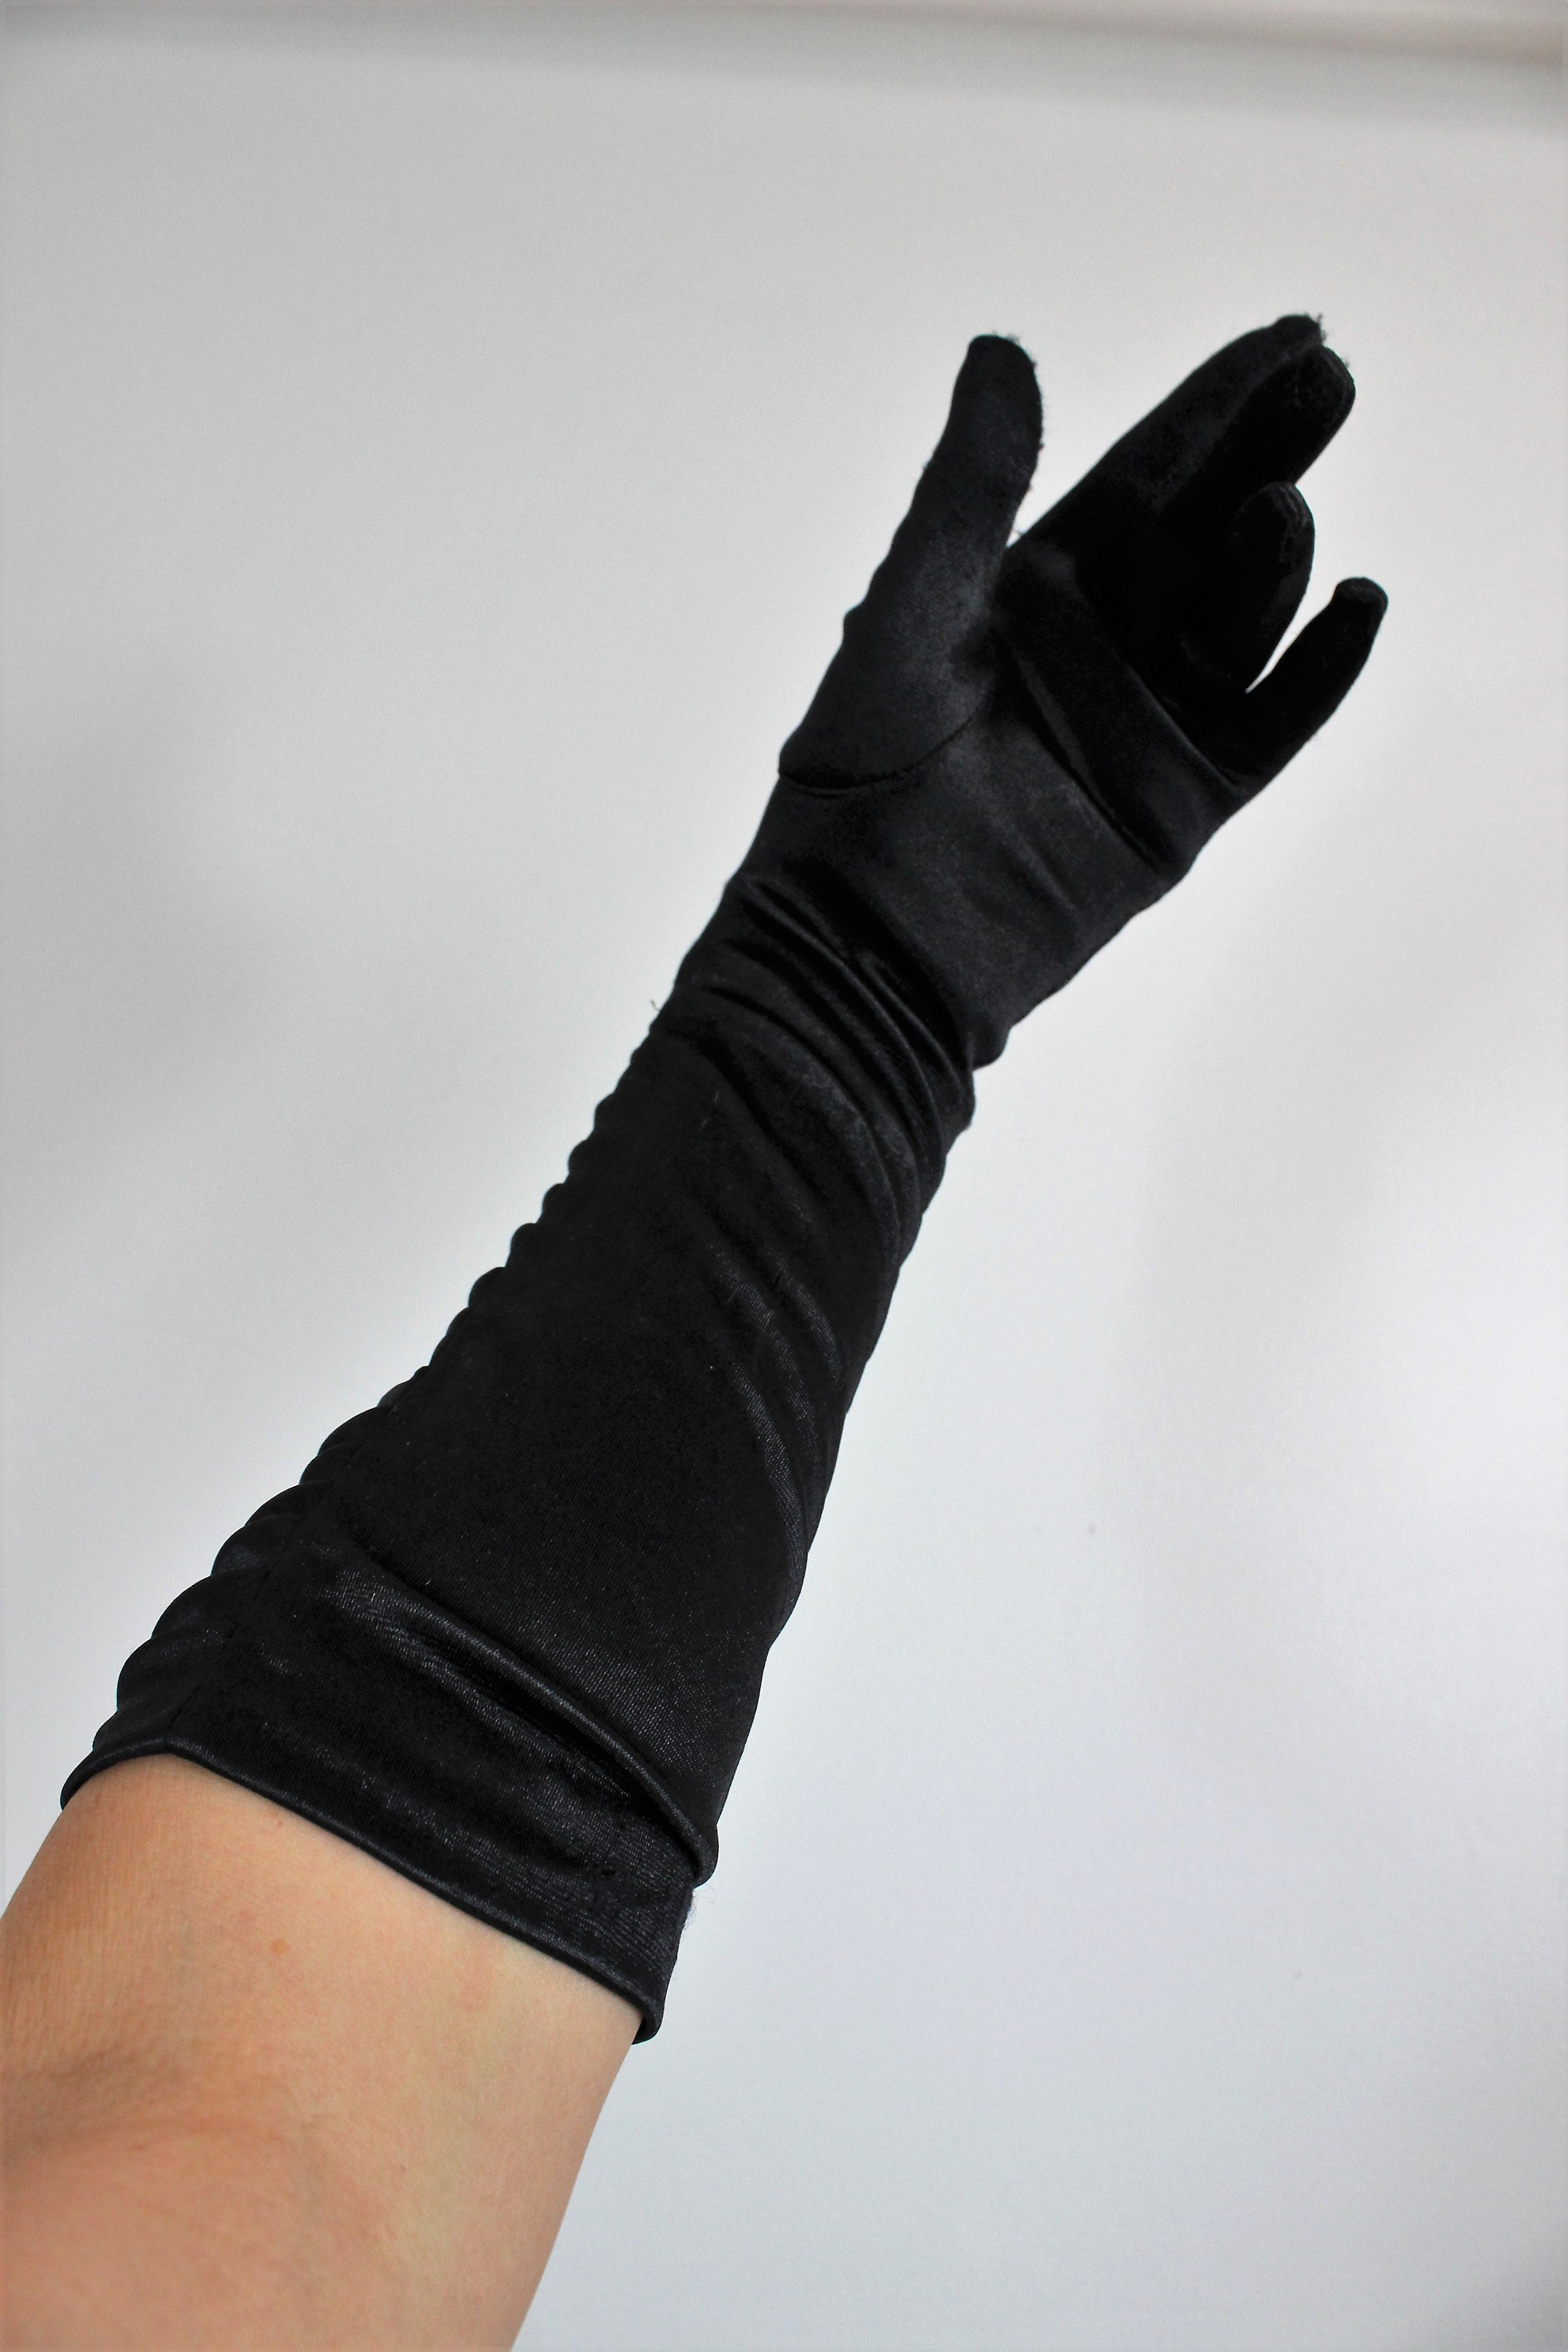 Vintage 1990s Black Satin Gloves With Ruching